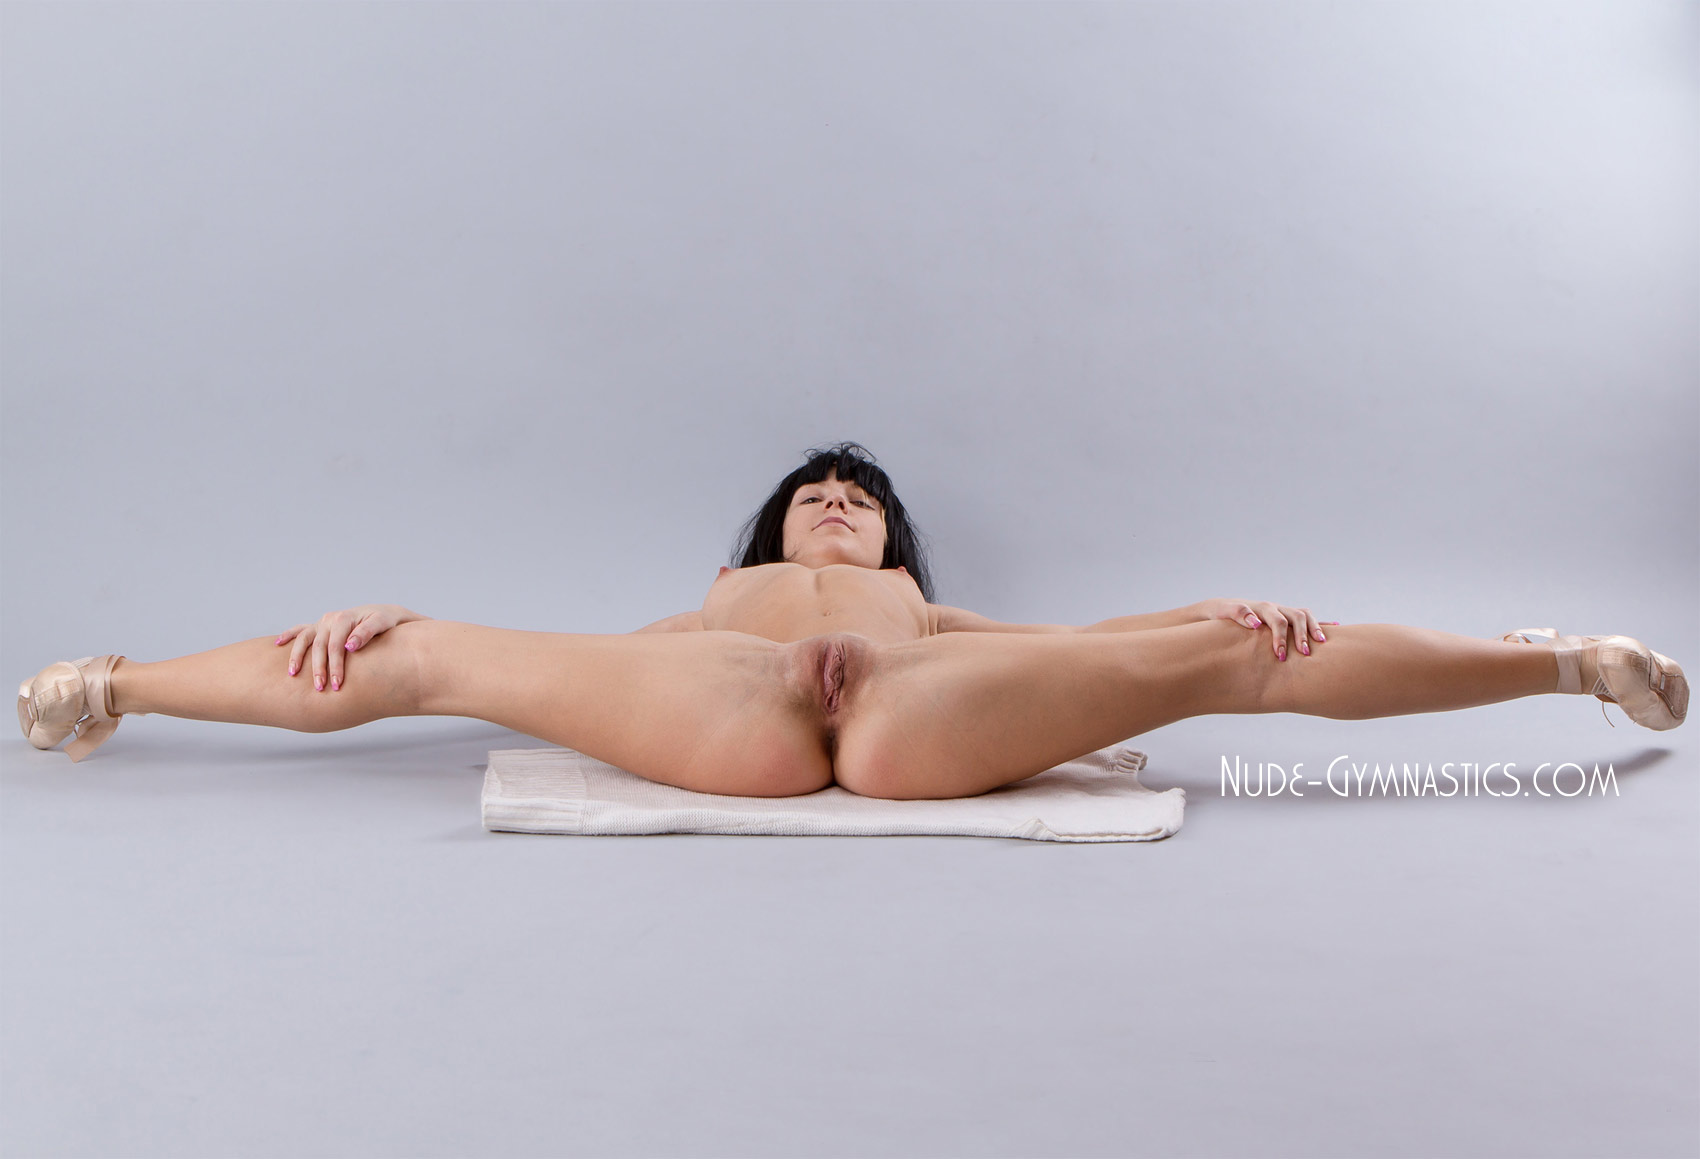 Naked gymnast almost